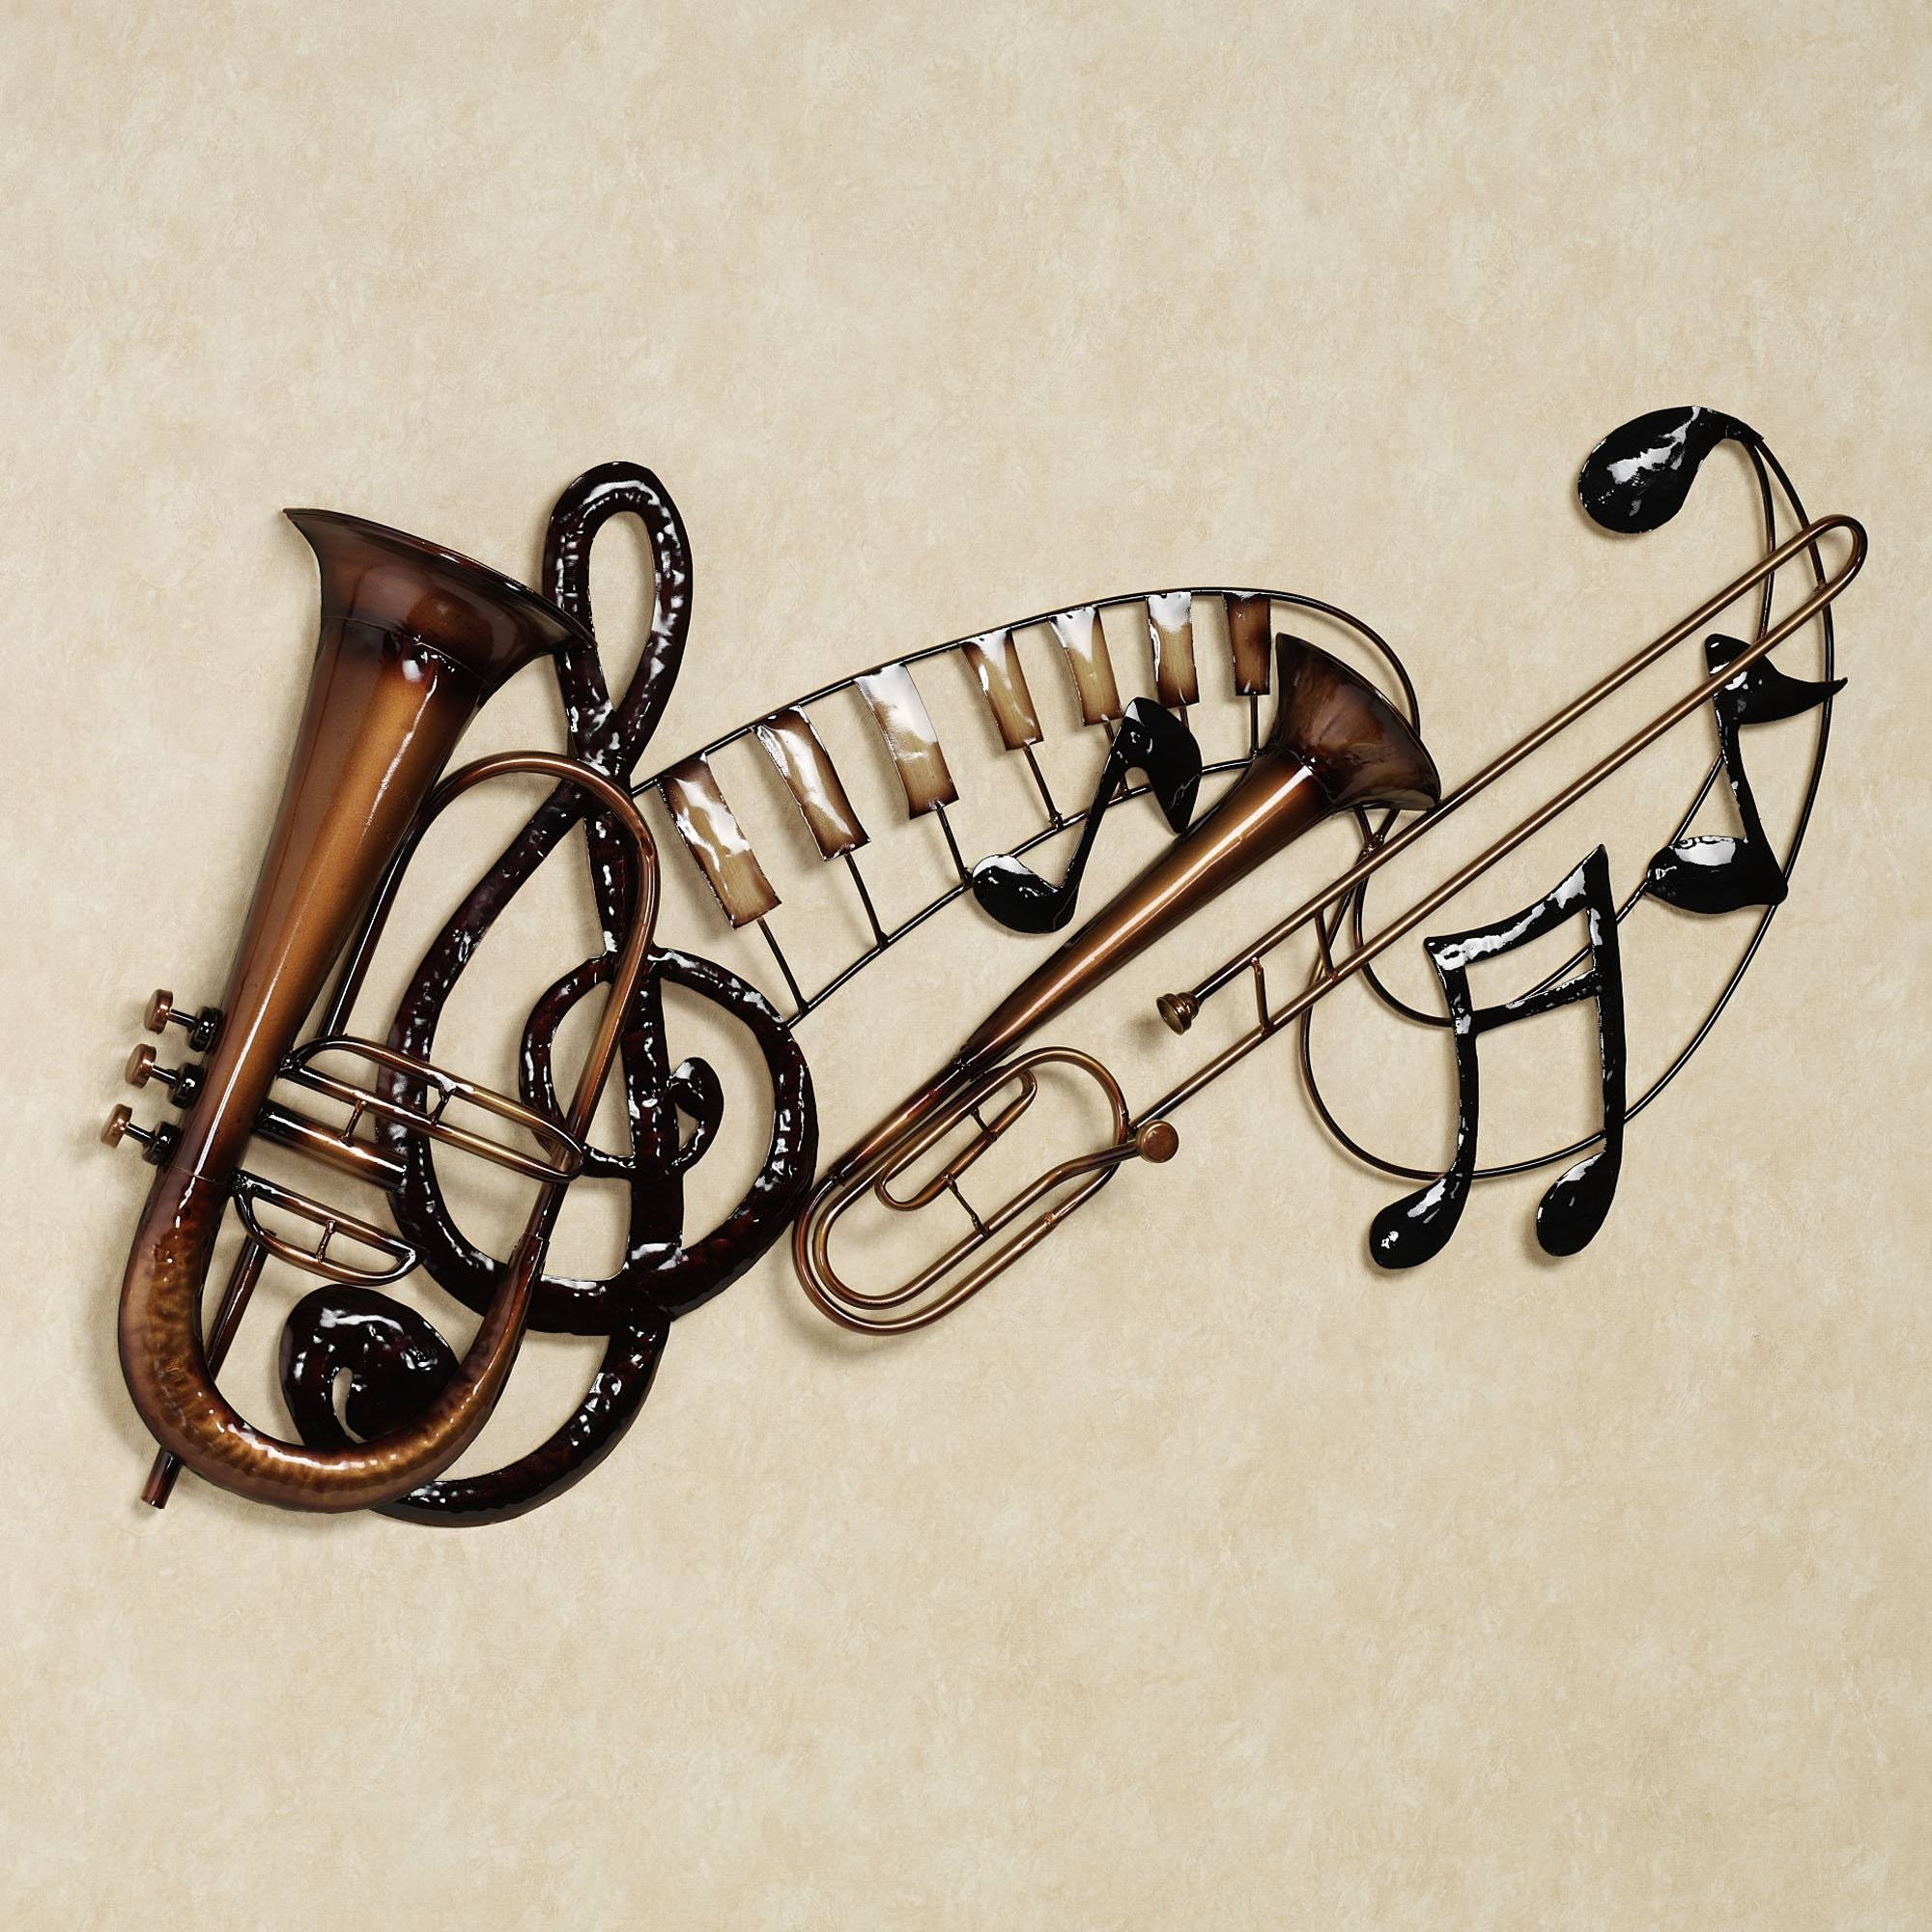 Wall Art Design Ideas: Interlude Unique Metal Wall Art Music Within Best And Newest Unique Metal Wall Art (View 11 of 20)